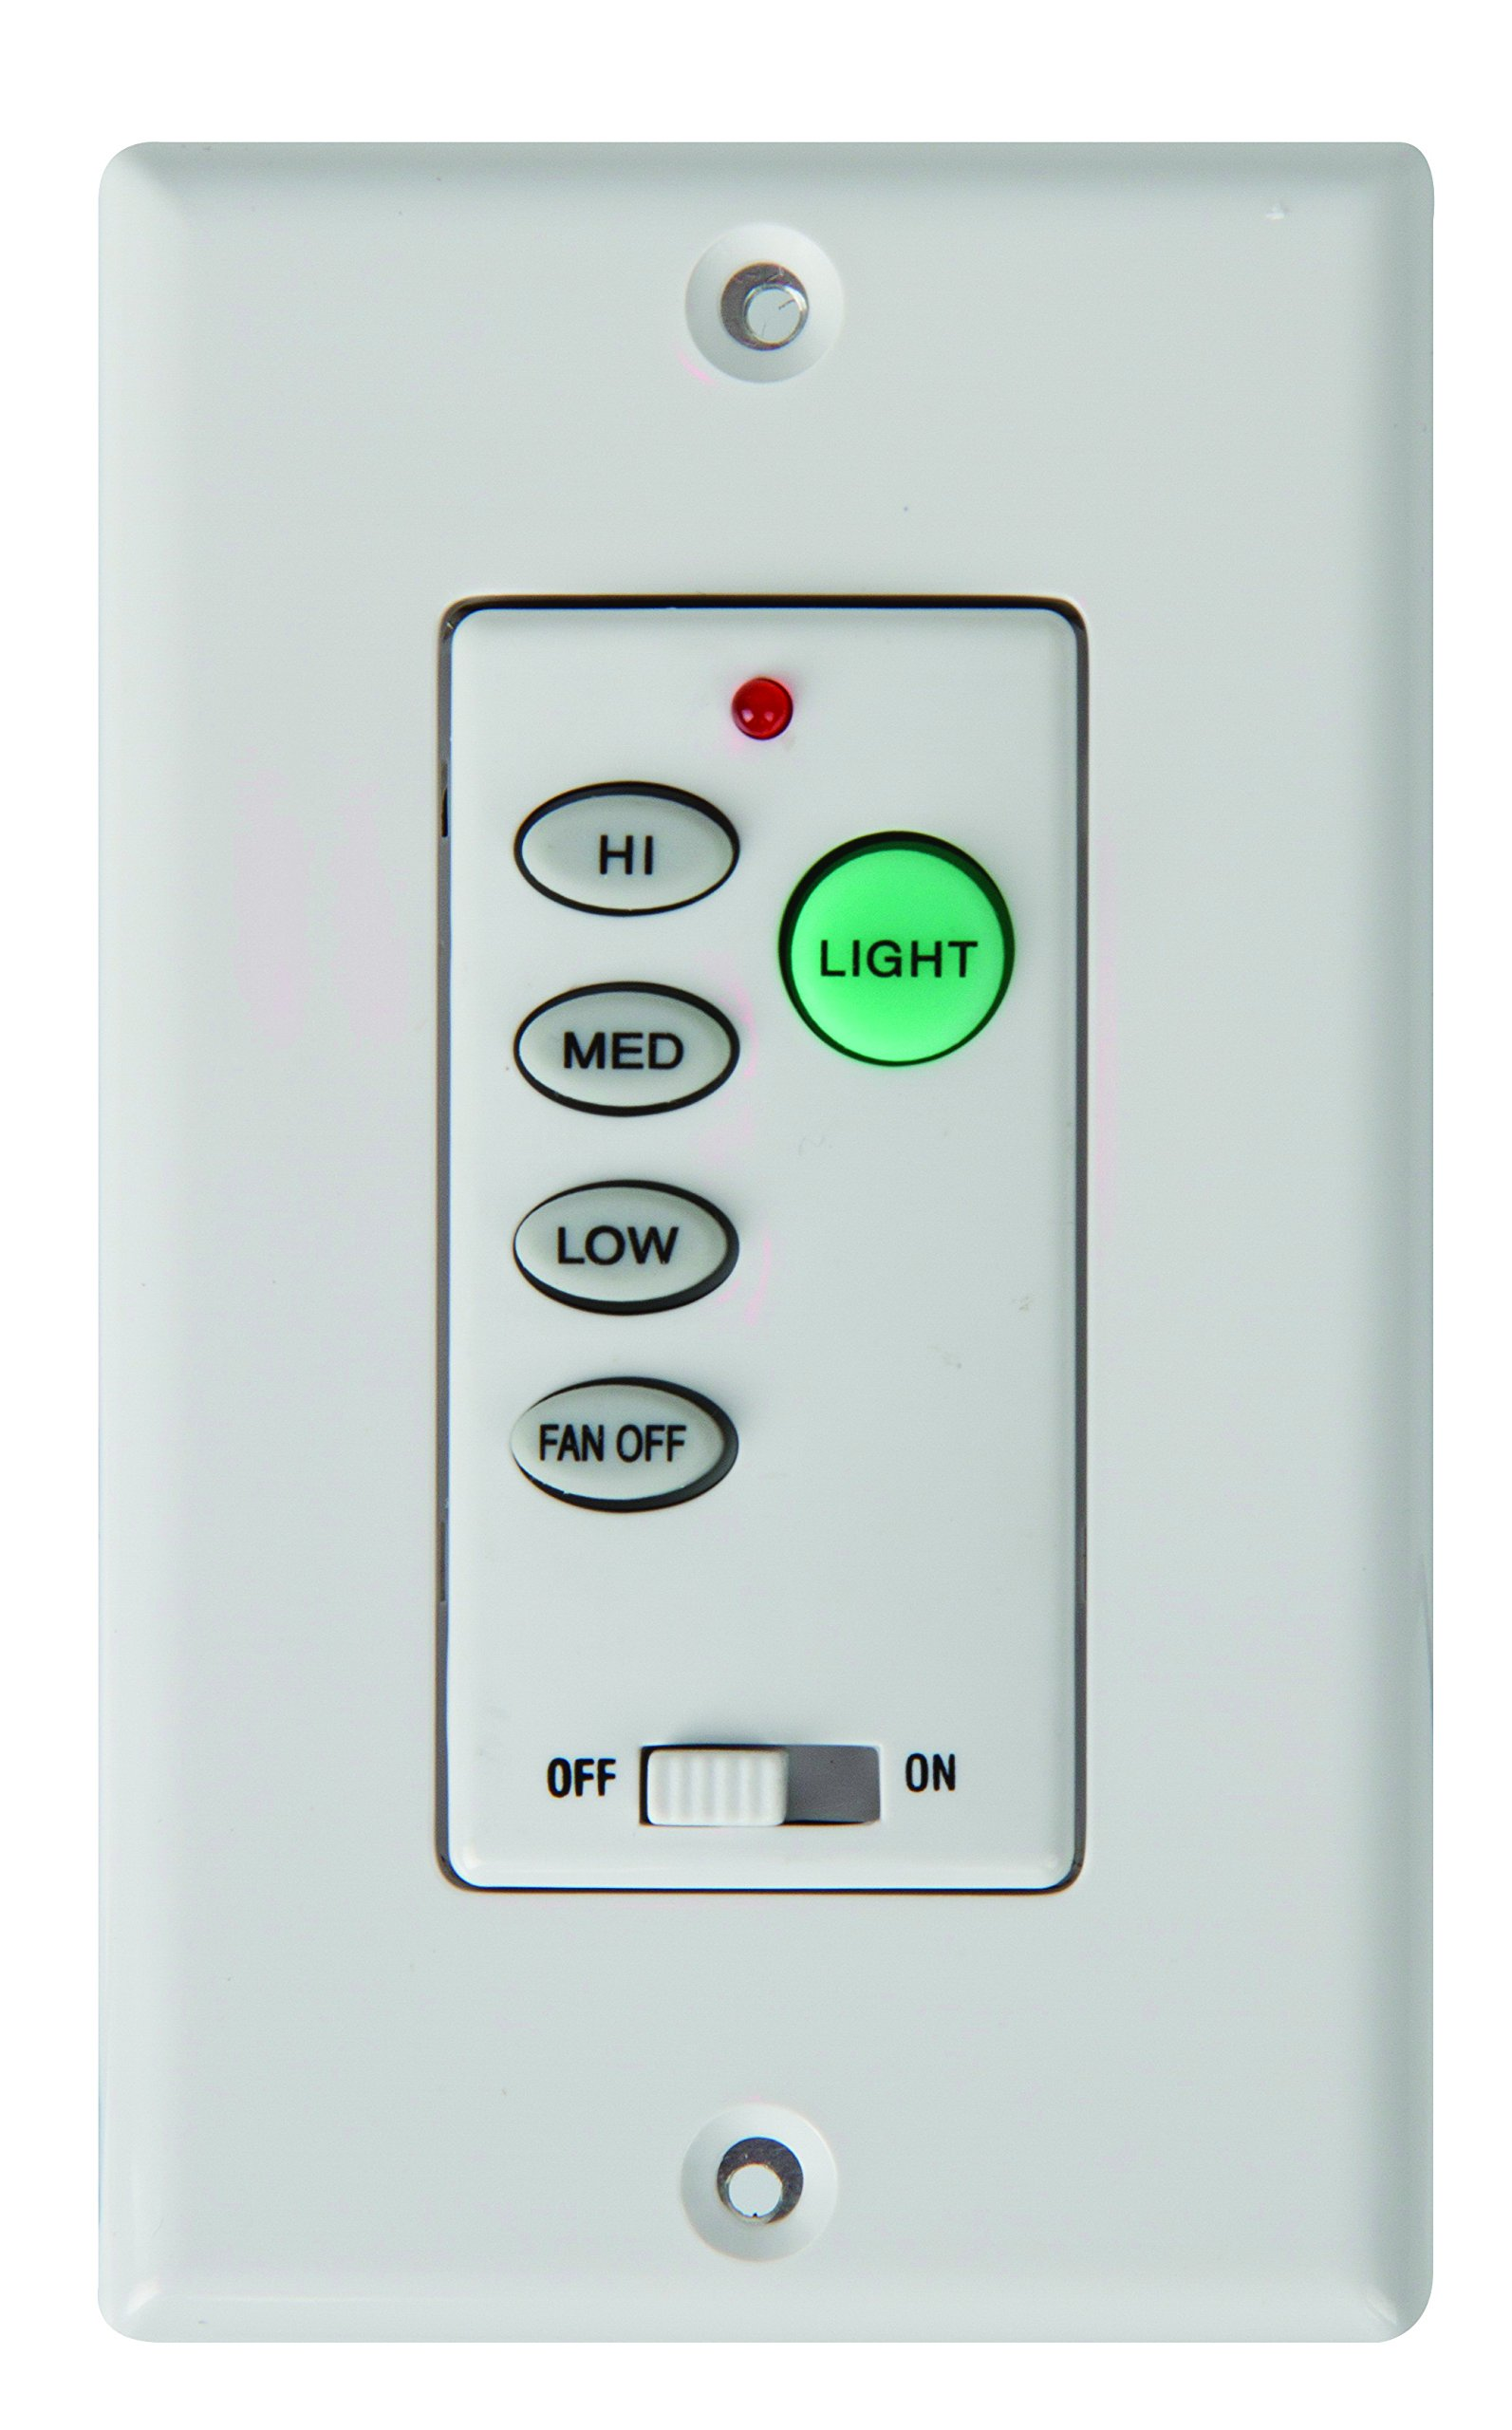 Concord Fans PD-009 Remote Control Intelligent Remote Hard Wired Wall Control For Multifamily Applications, 3 Speed Push Button Control, Light Kit On/Off